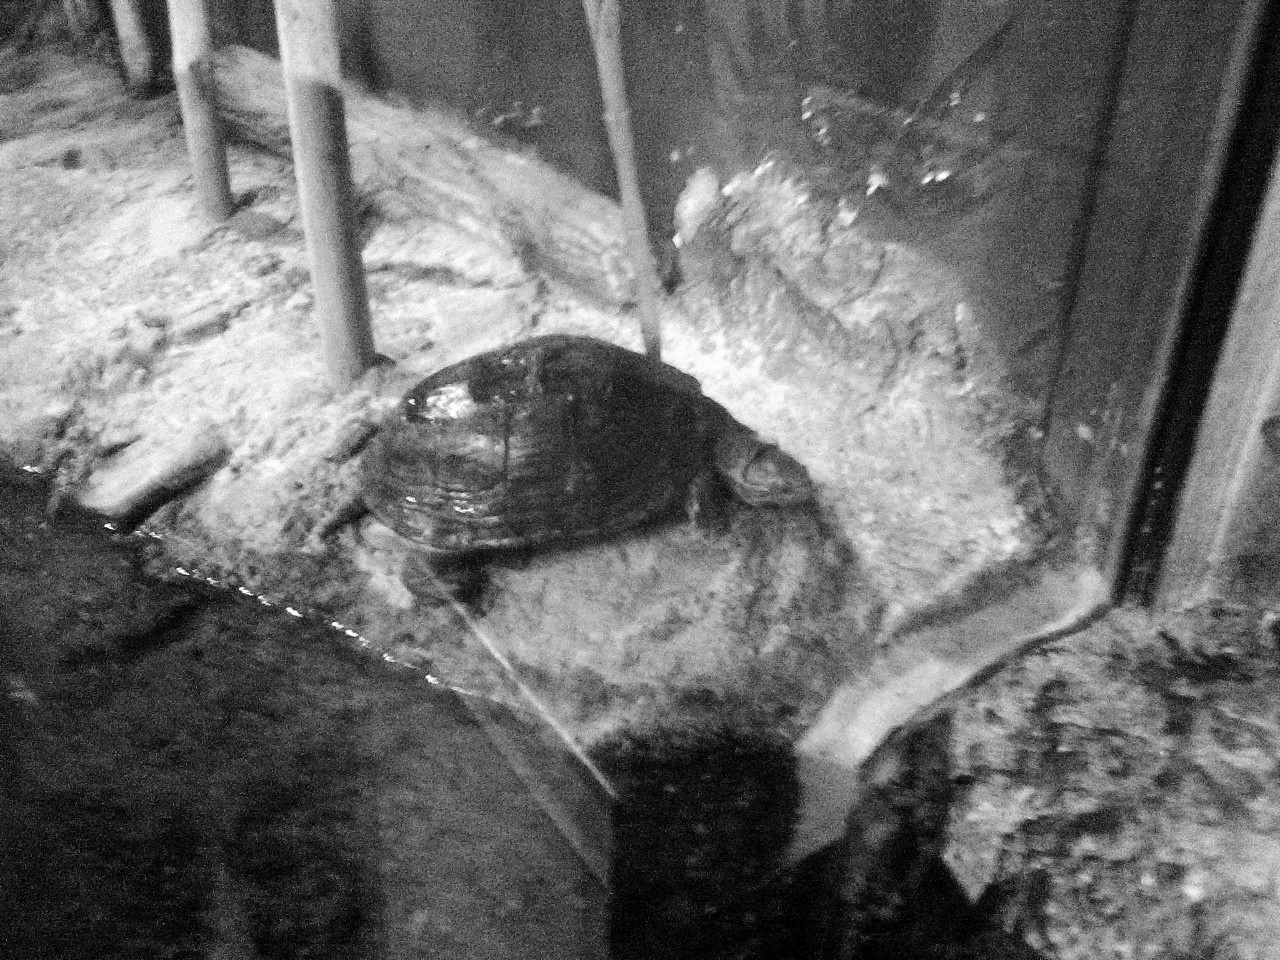 Columbus Zoo BW 5-31-2014 2-52-46 PM